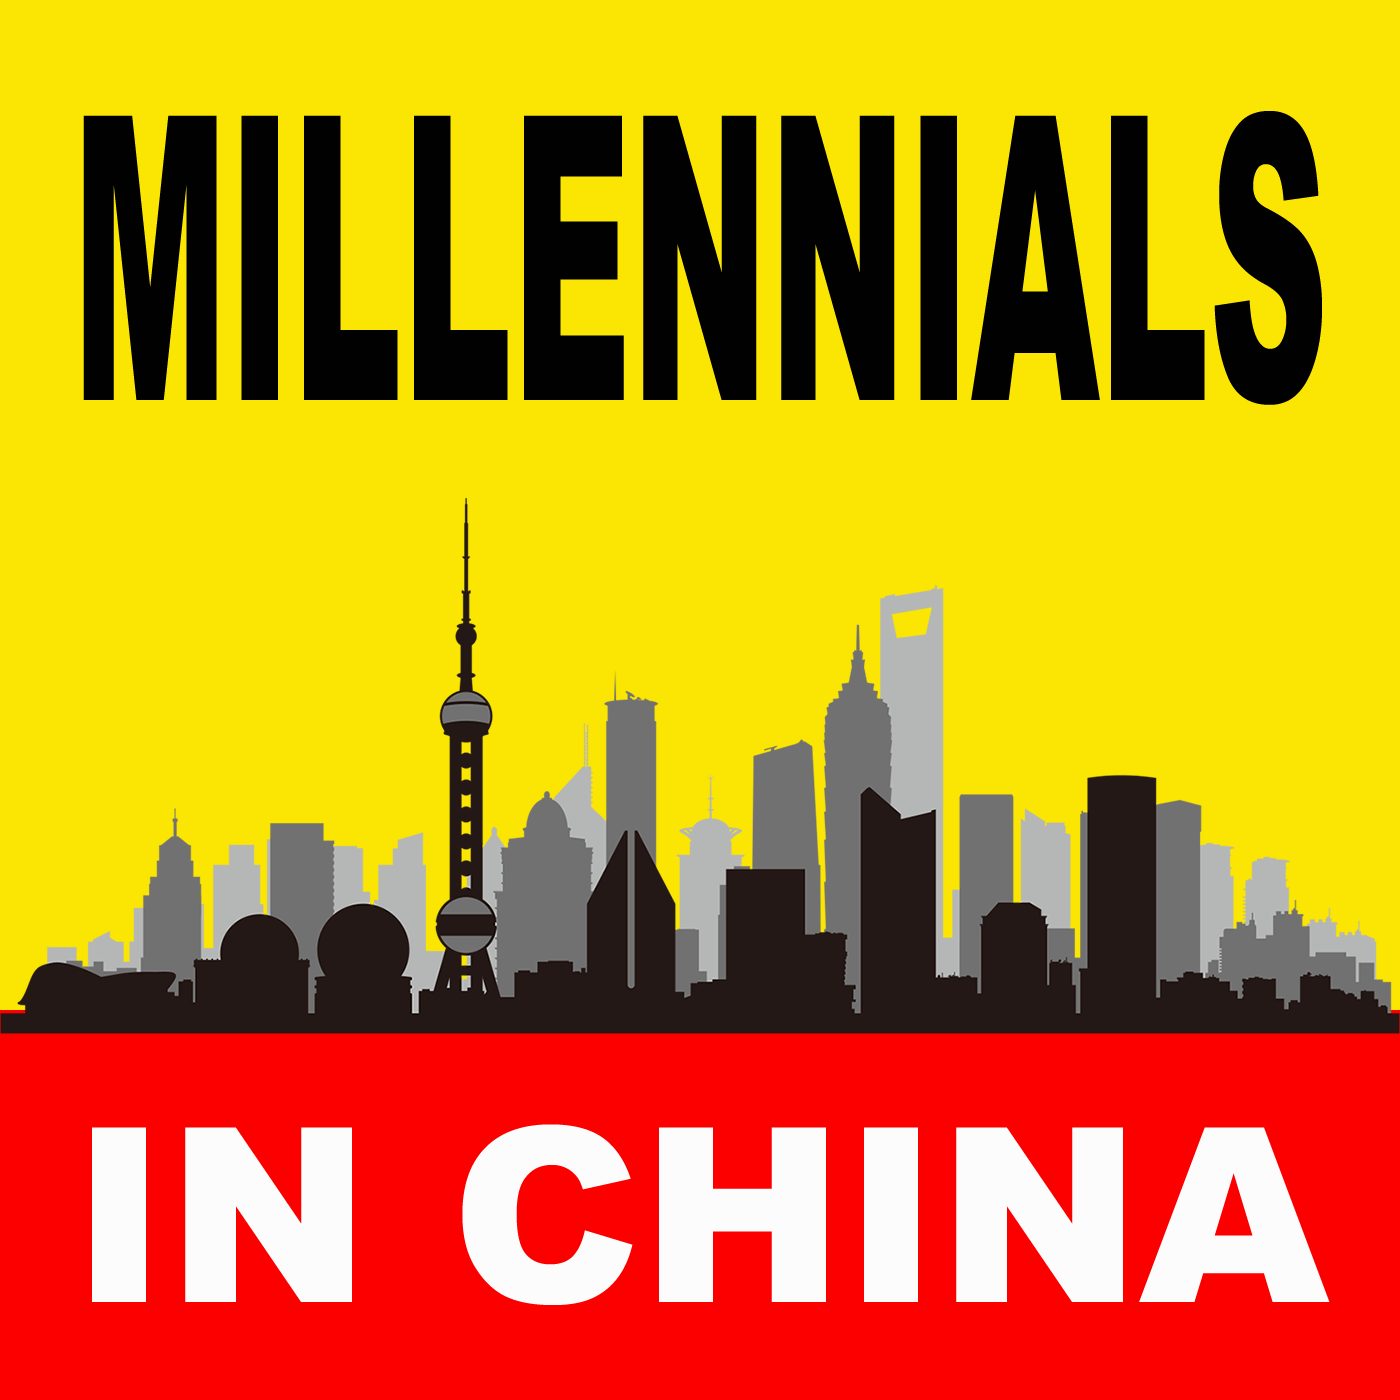 EP21: Saving, Investing, and How Millennials Can Improve Their Finances ft. Byung Koo Mulder